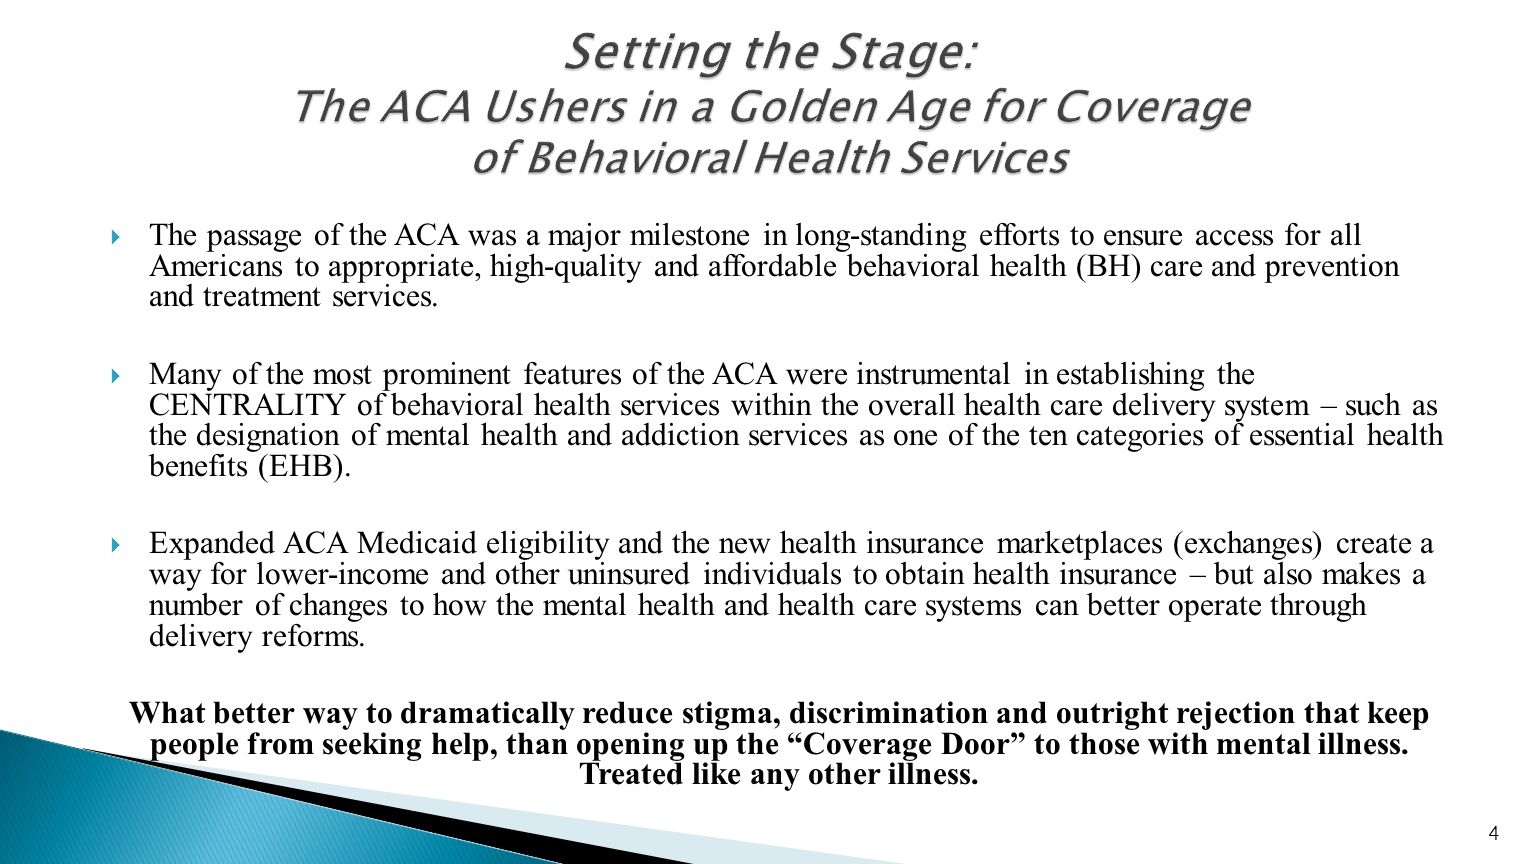  The passage of the ACA was a major milestone in long-standing efforts to ensure access for all Americans to appropriate, high-quality and affordable behavioral health (BH) care and prevention and treatment services.